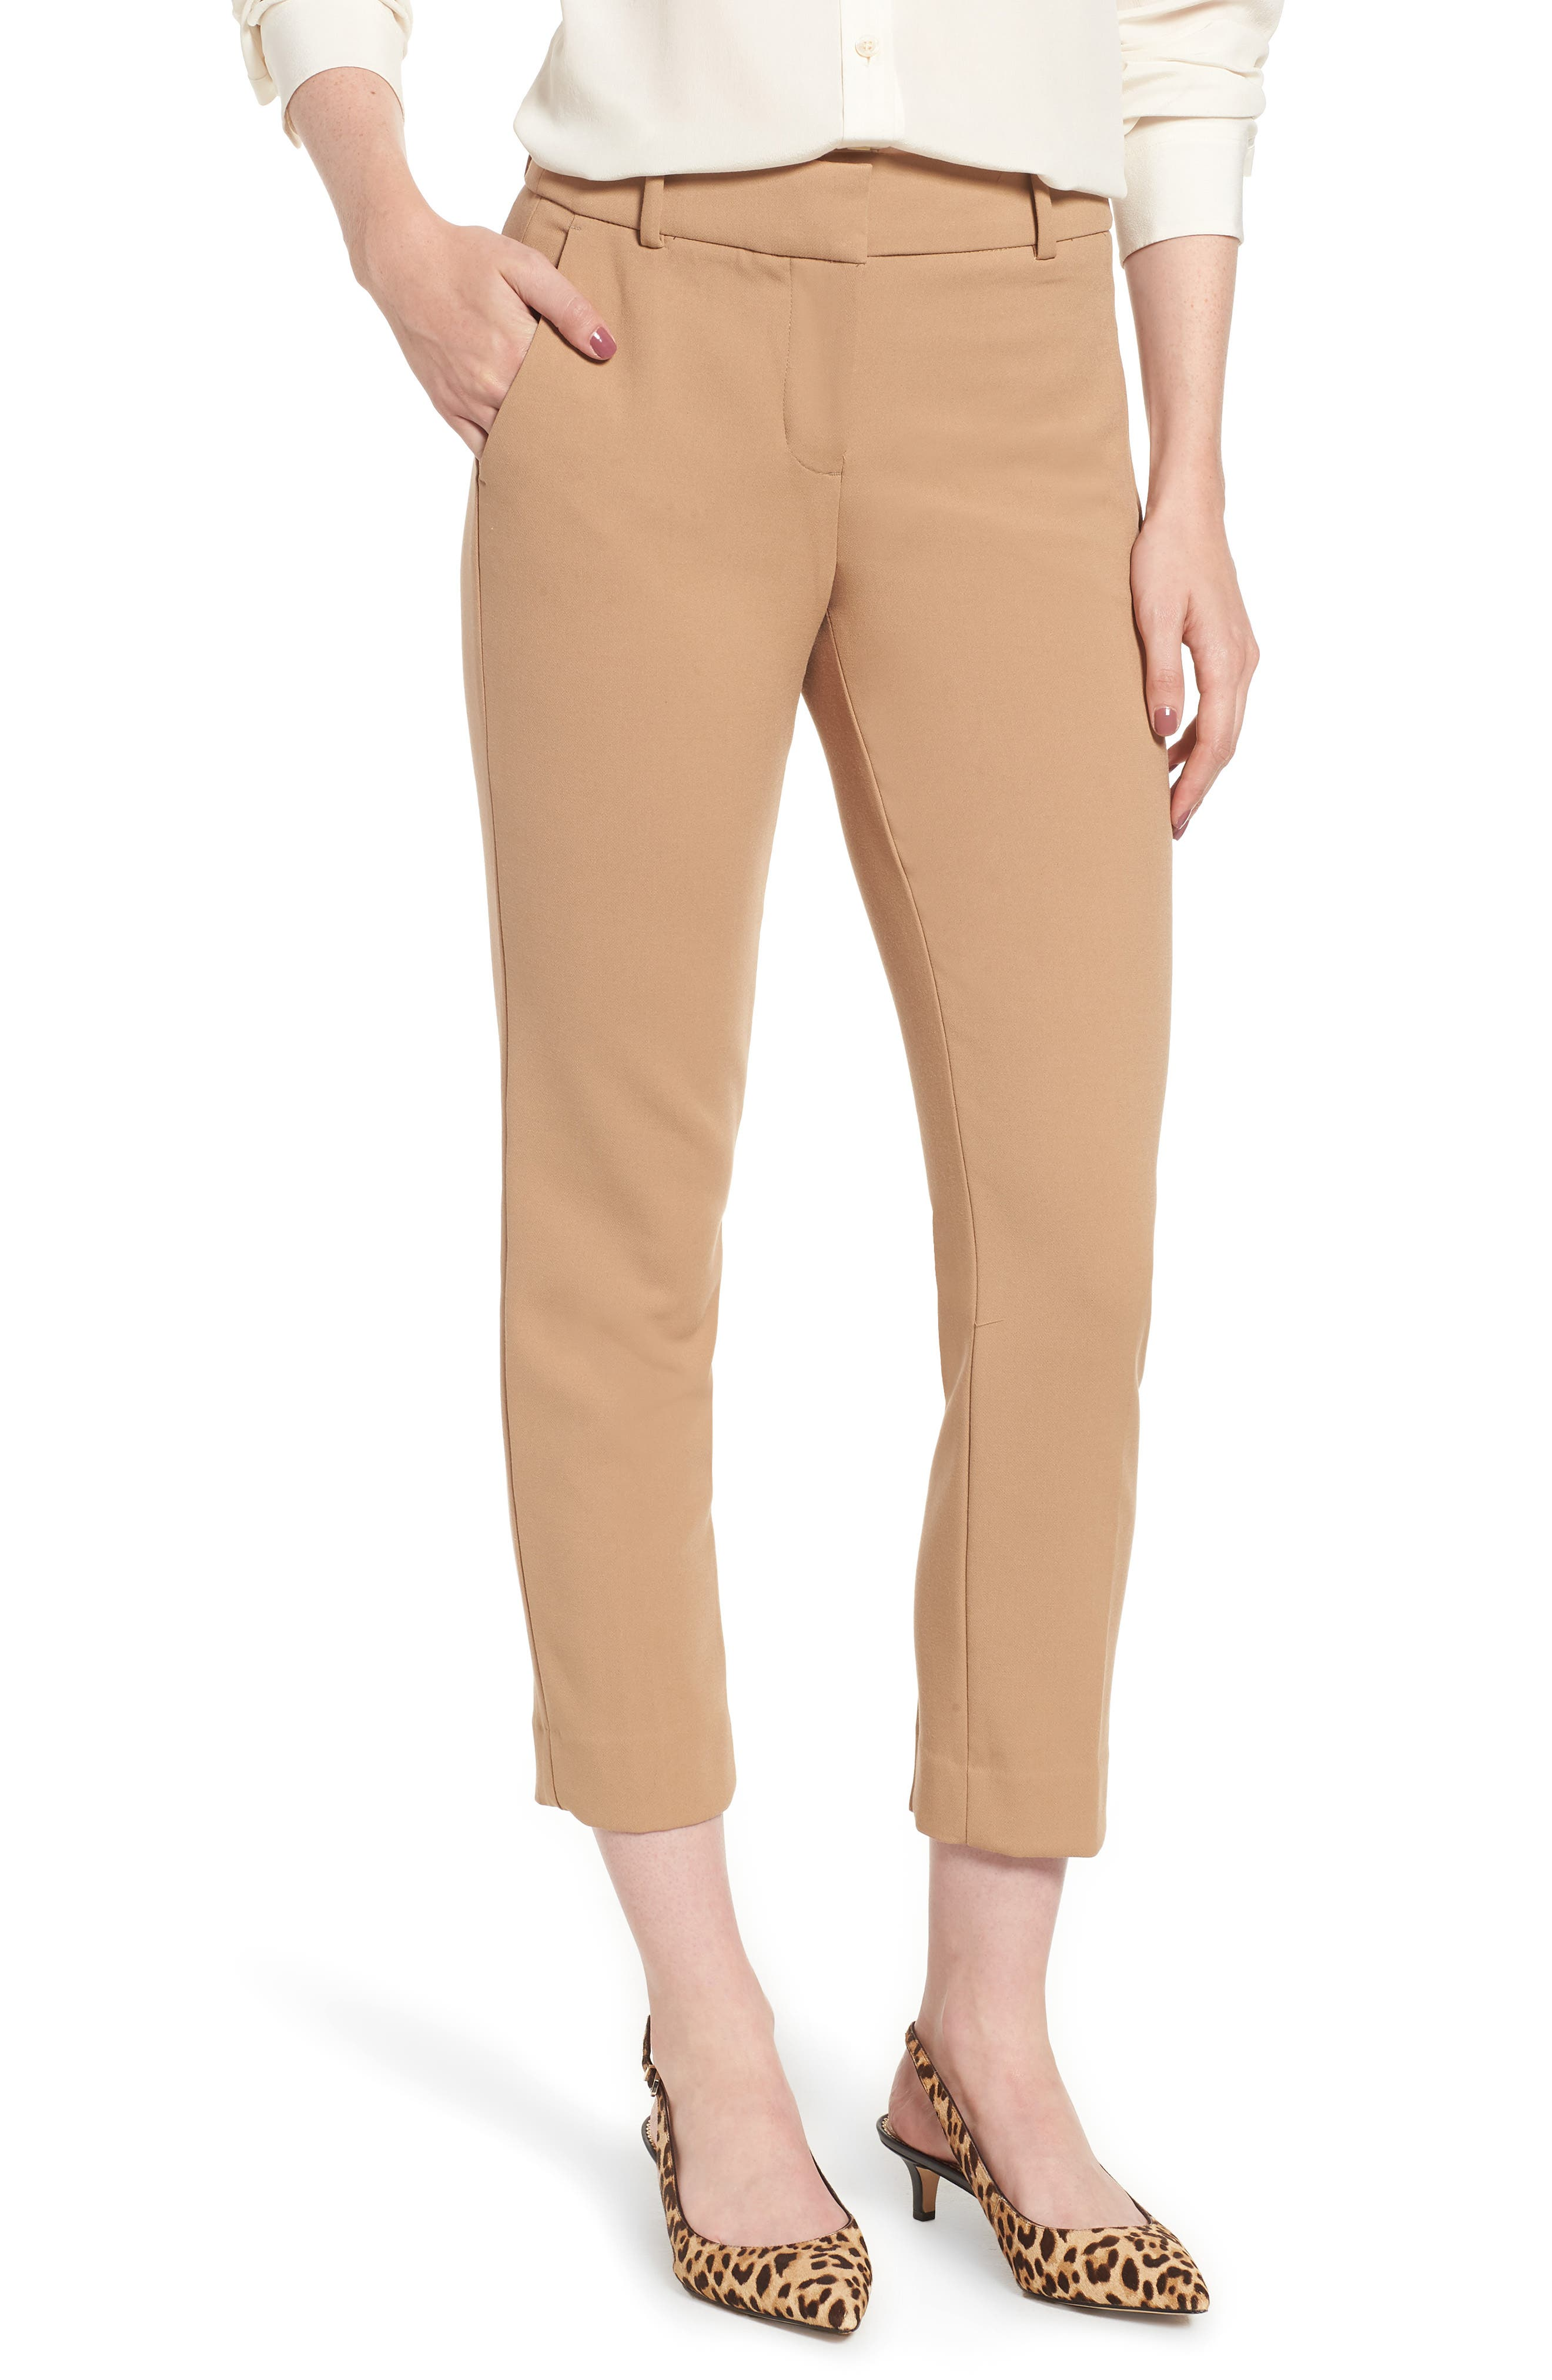 Cameron Four Season Crop Pants,                         Main,                         color, HEATHER SADDLE